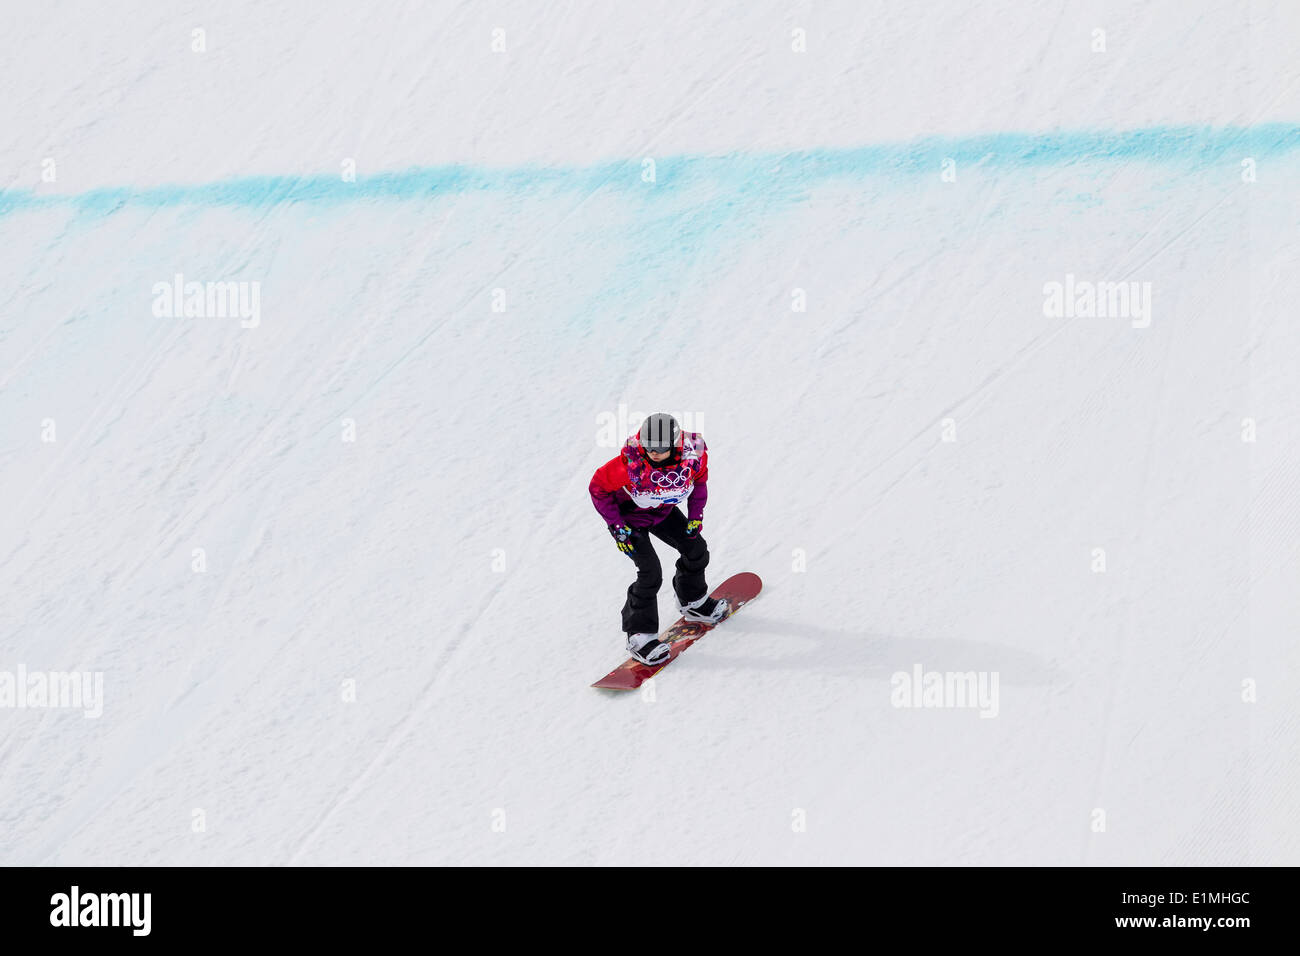 Sina Candrian (SWI) competing in Ladies's Snowboard Slopestyle at the Olympic Winter Games, Sochi 2014 - Stock Image